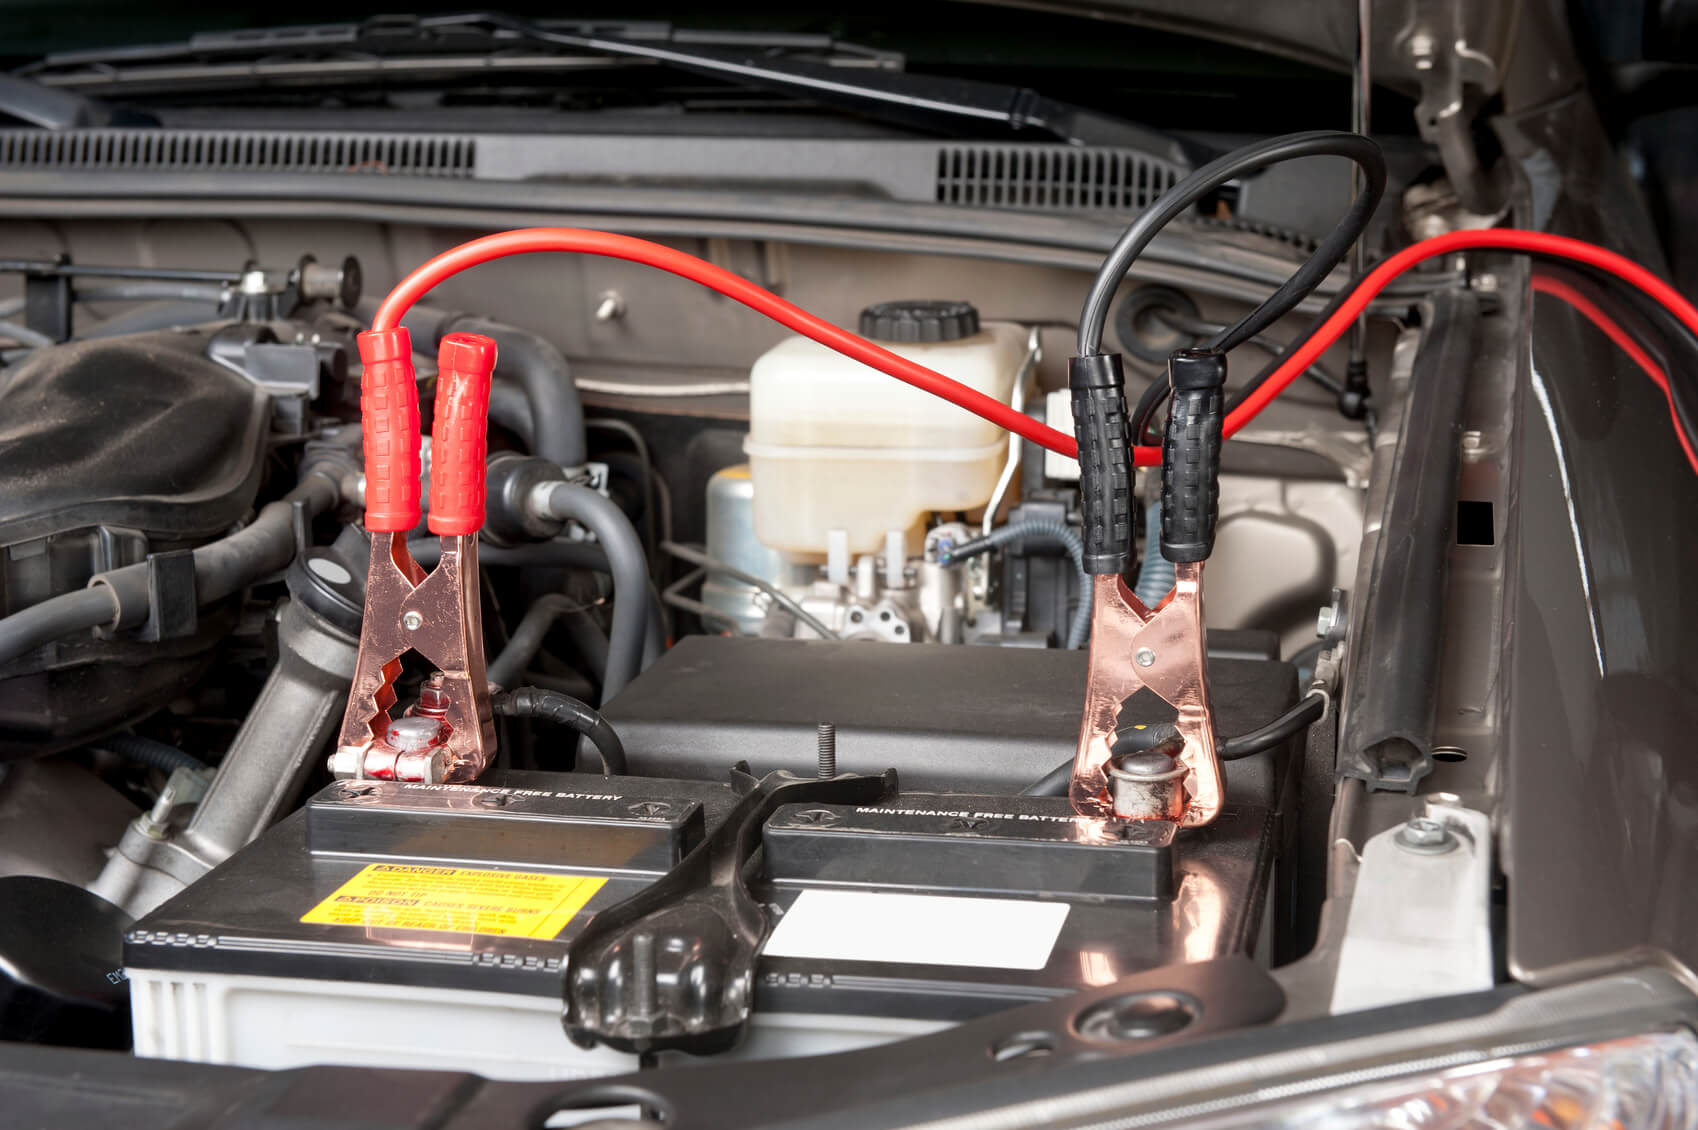 Where is the battery in a car - Automobile Battery Charging